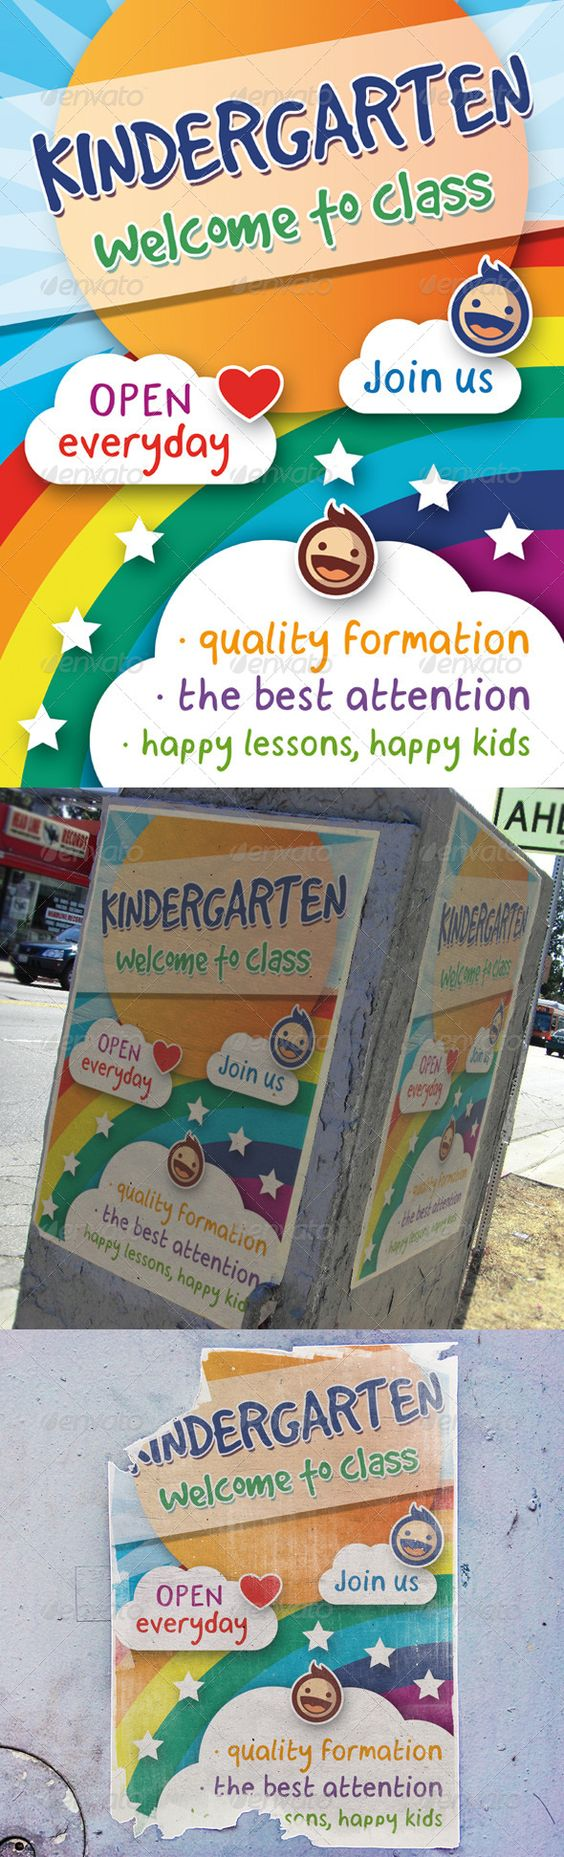 kindergarten flyer template kid typography and flyer template kindergarten flyer template